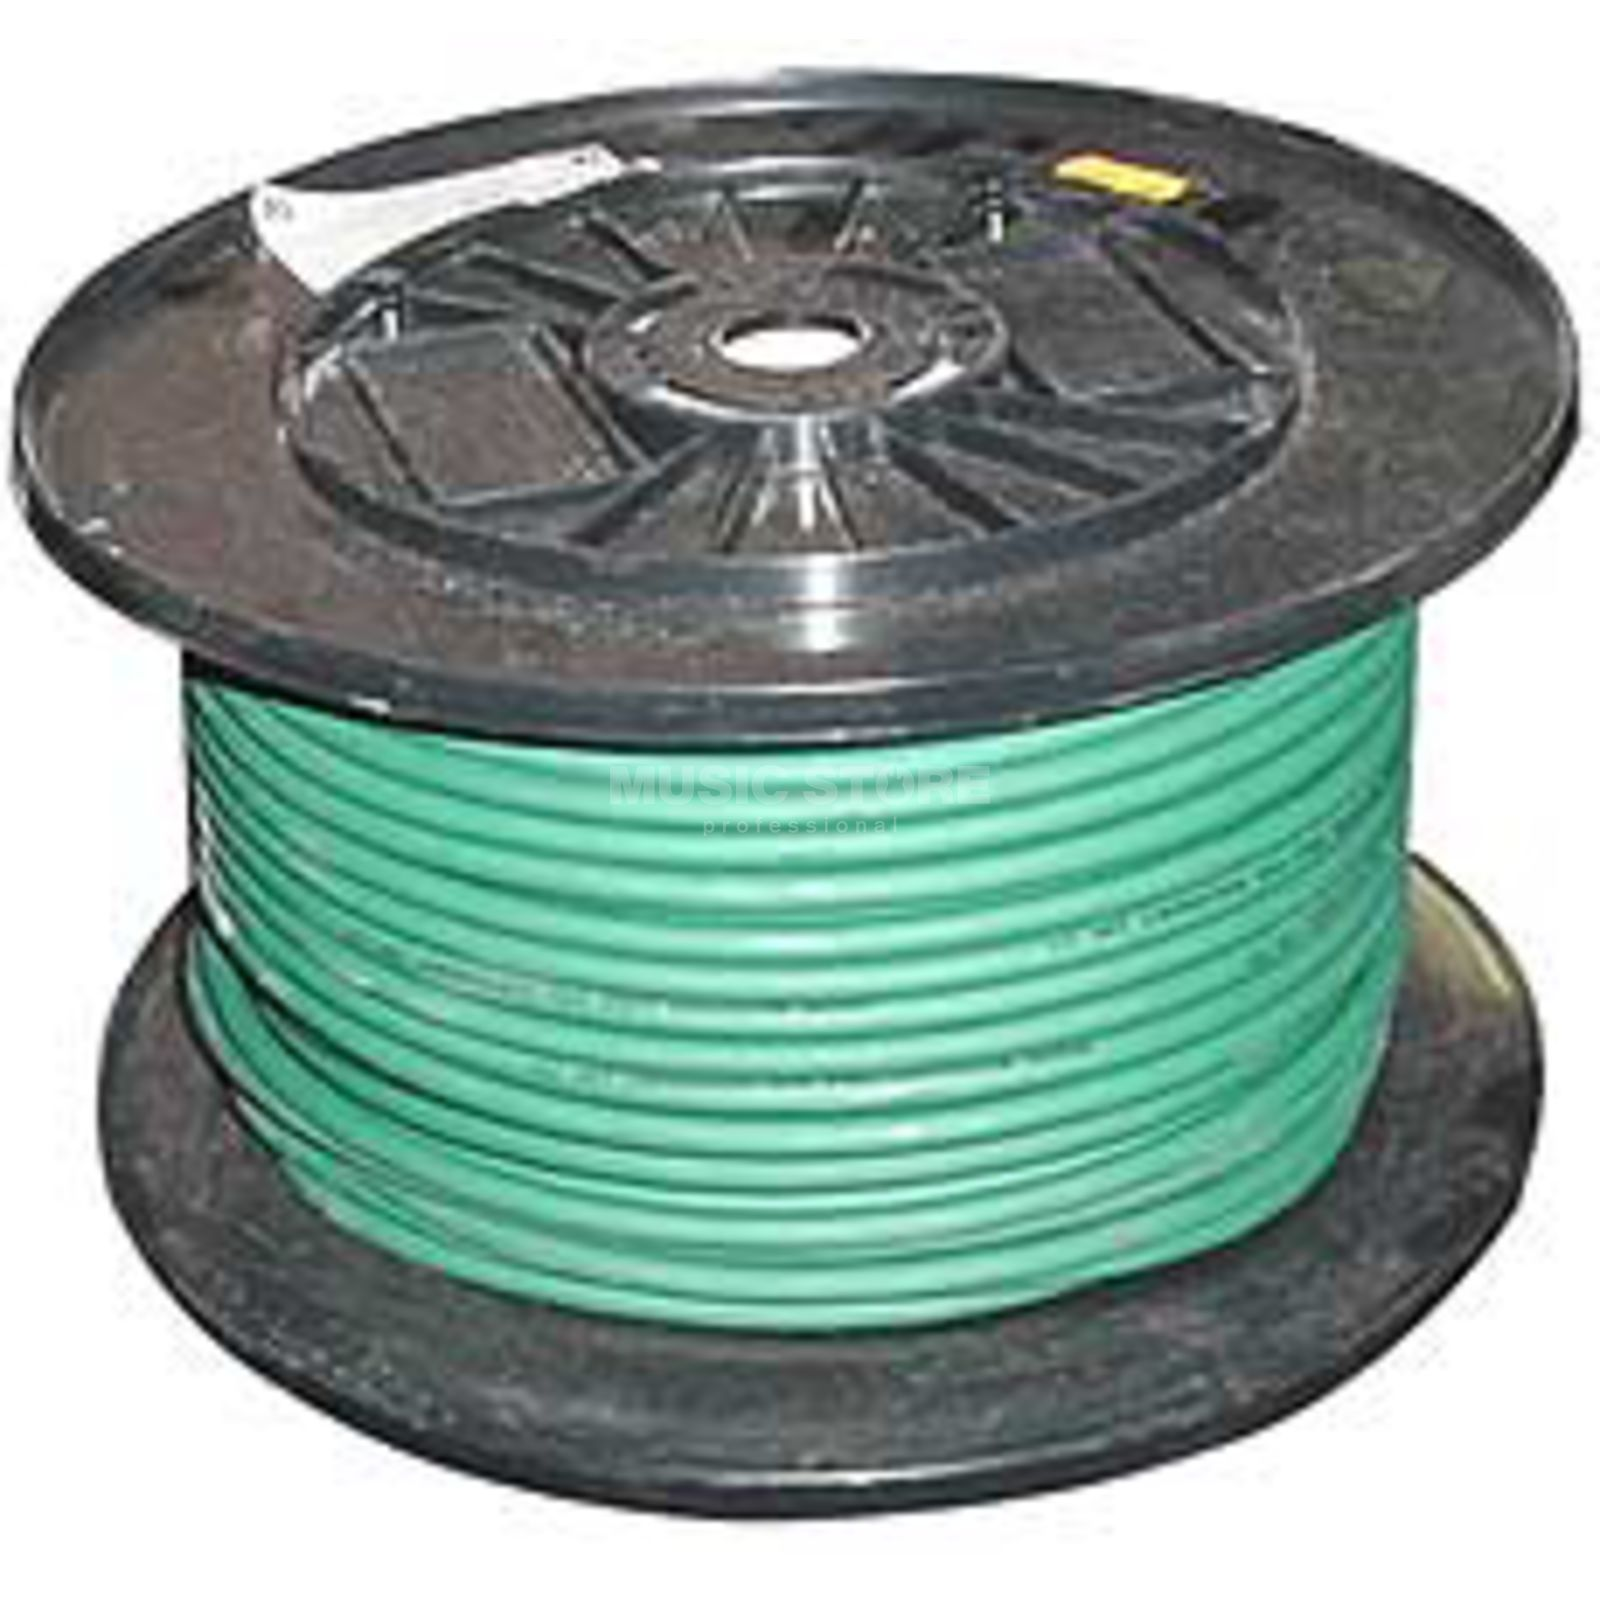 Cordial CMK 222 Microphone Cable green, 100m Produktbillede